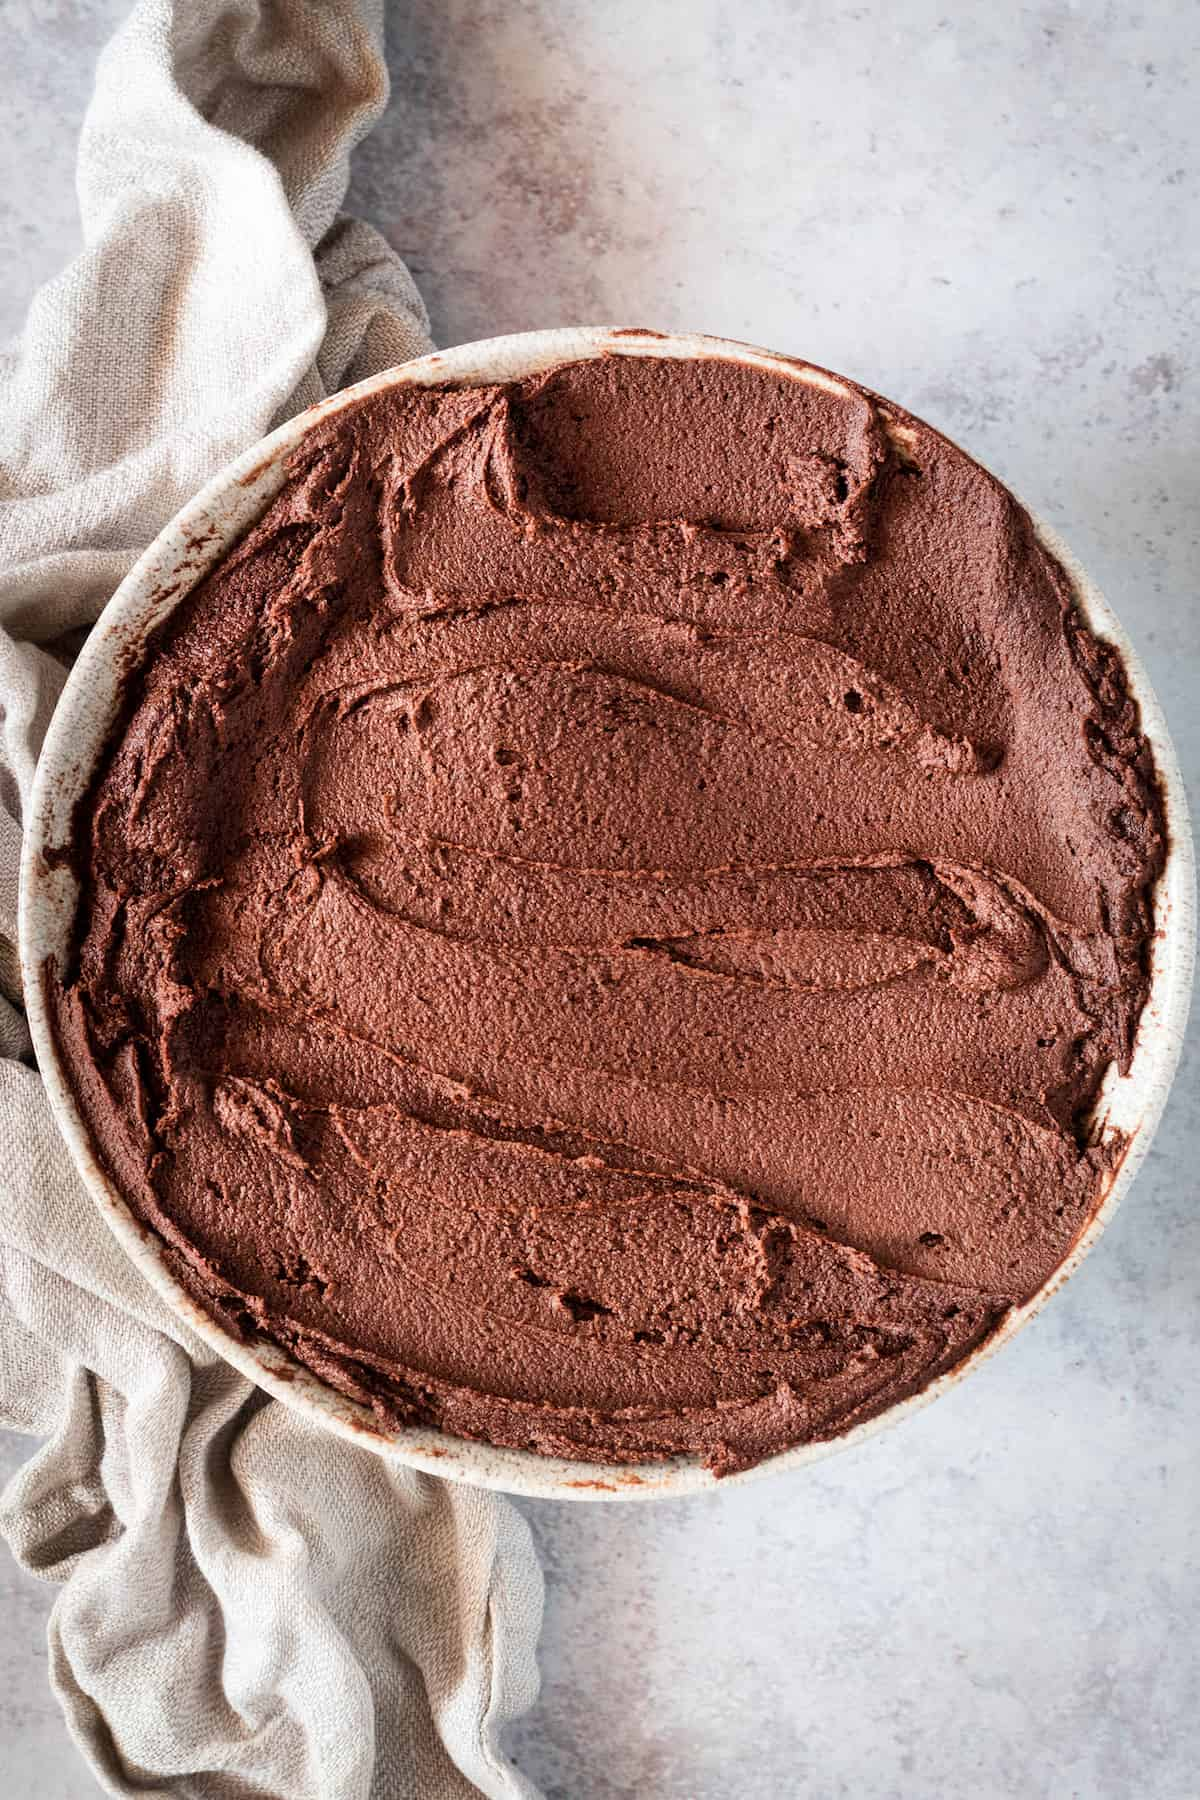 A Bowl Filled with Creamy Homemade Chocolate Frosting From Above